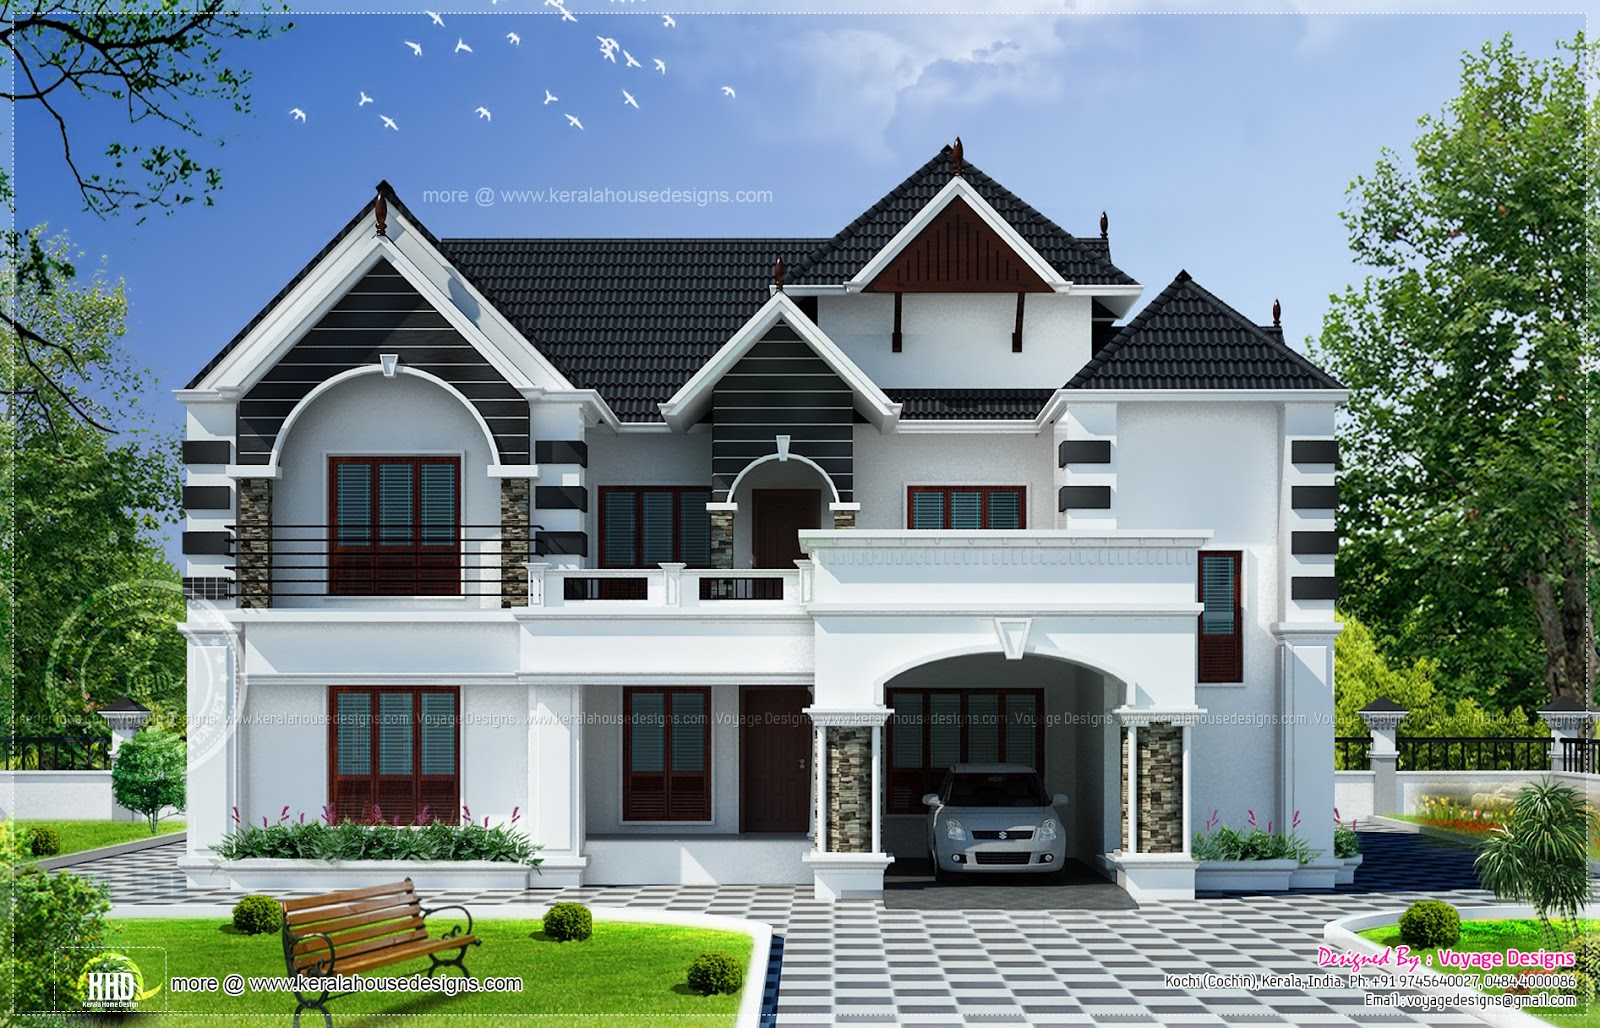 4 bedroom colonial style house kerala home design and for Colonial style house plans kerala